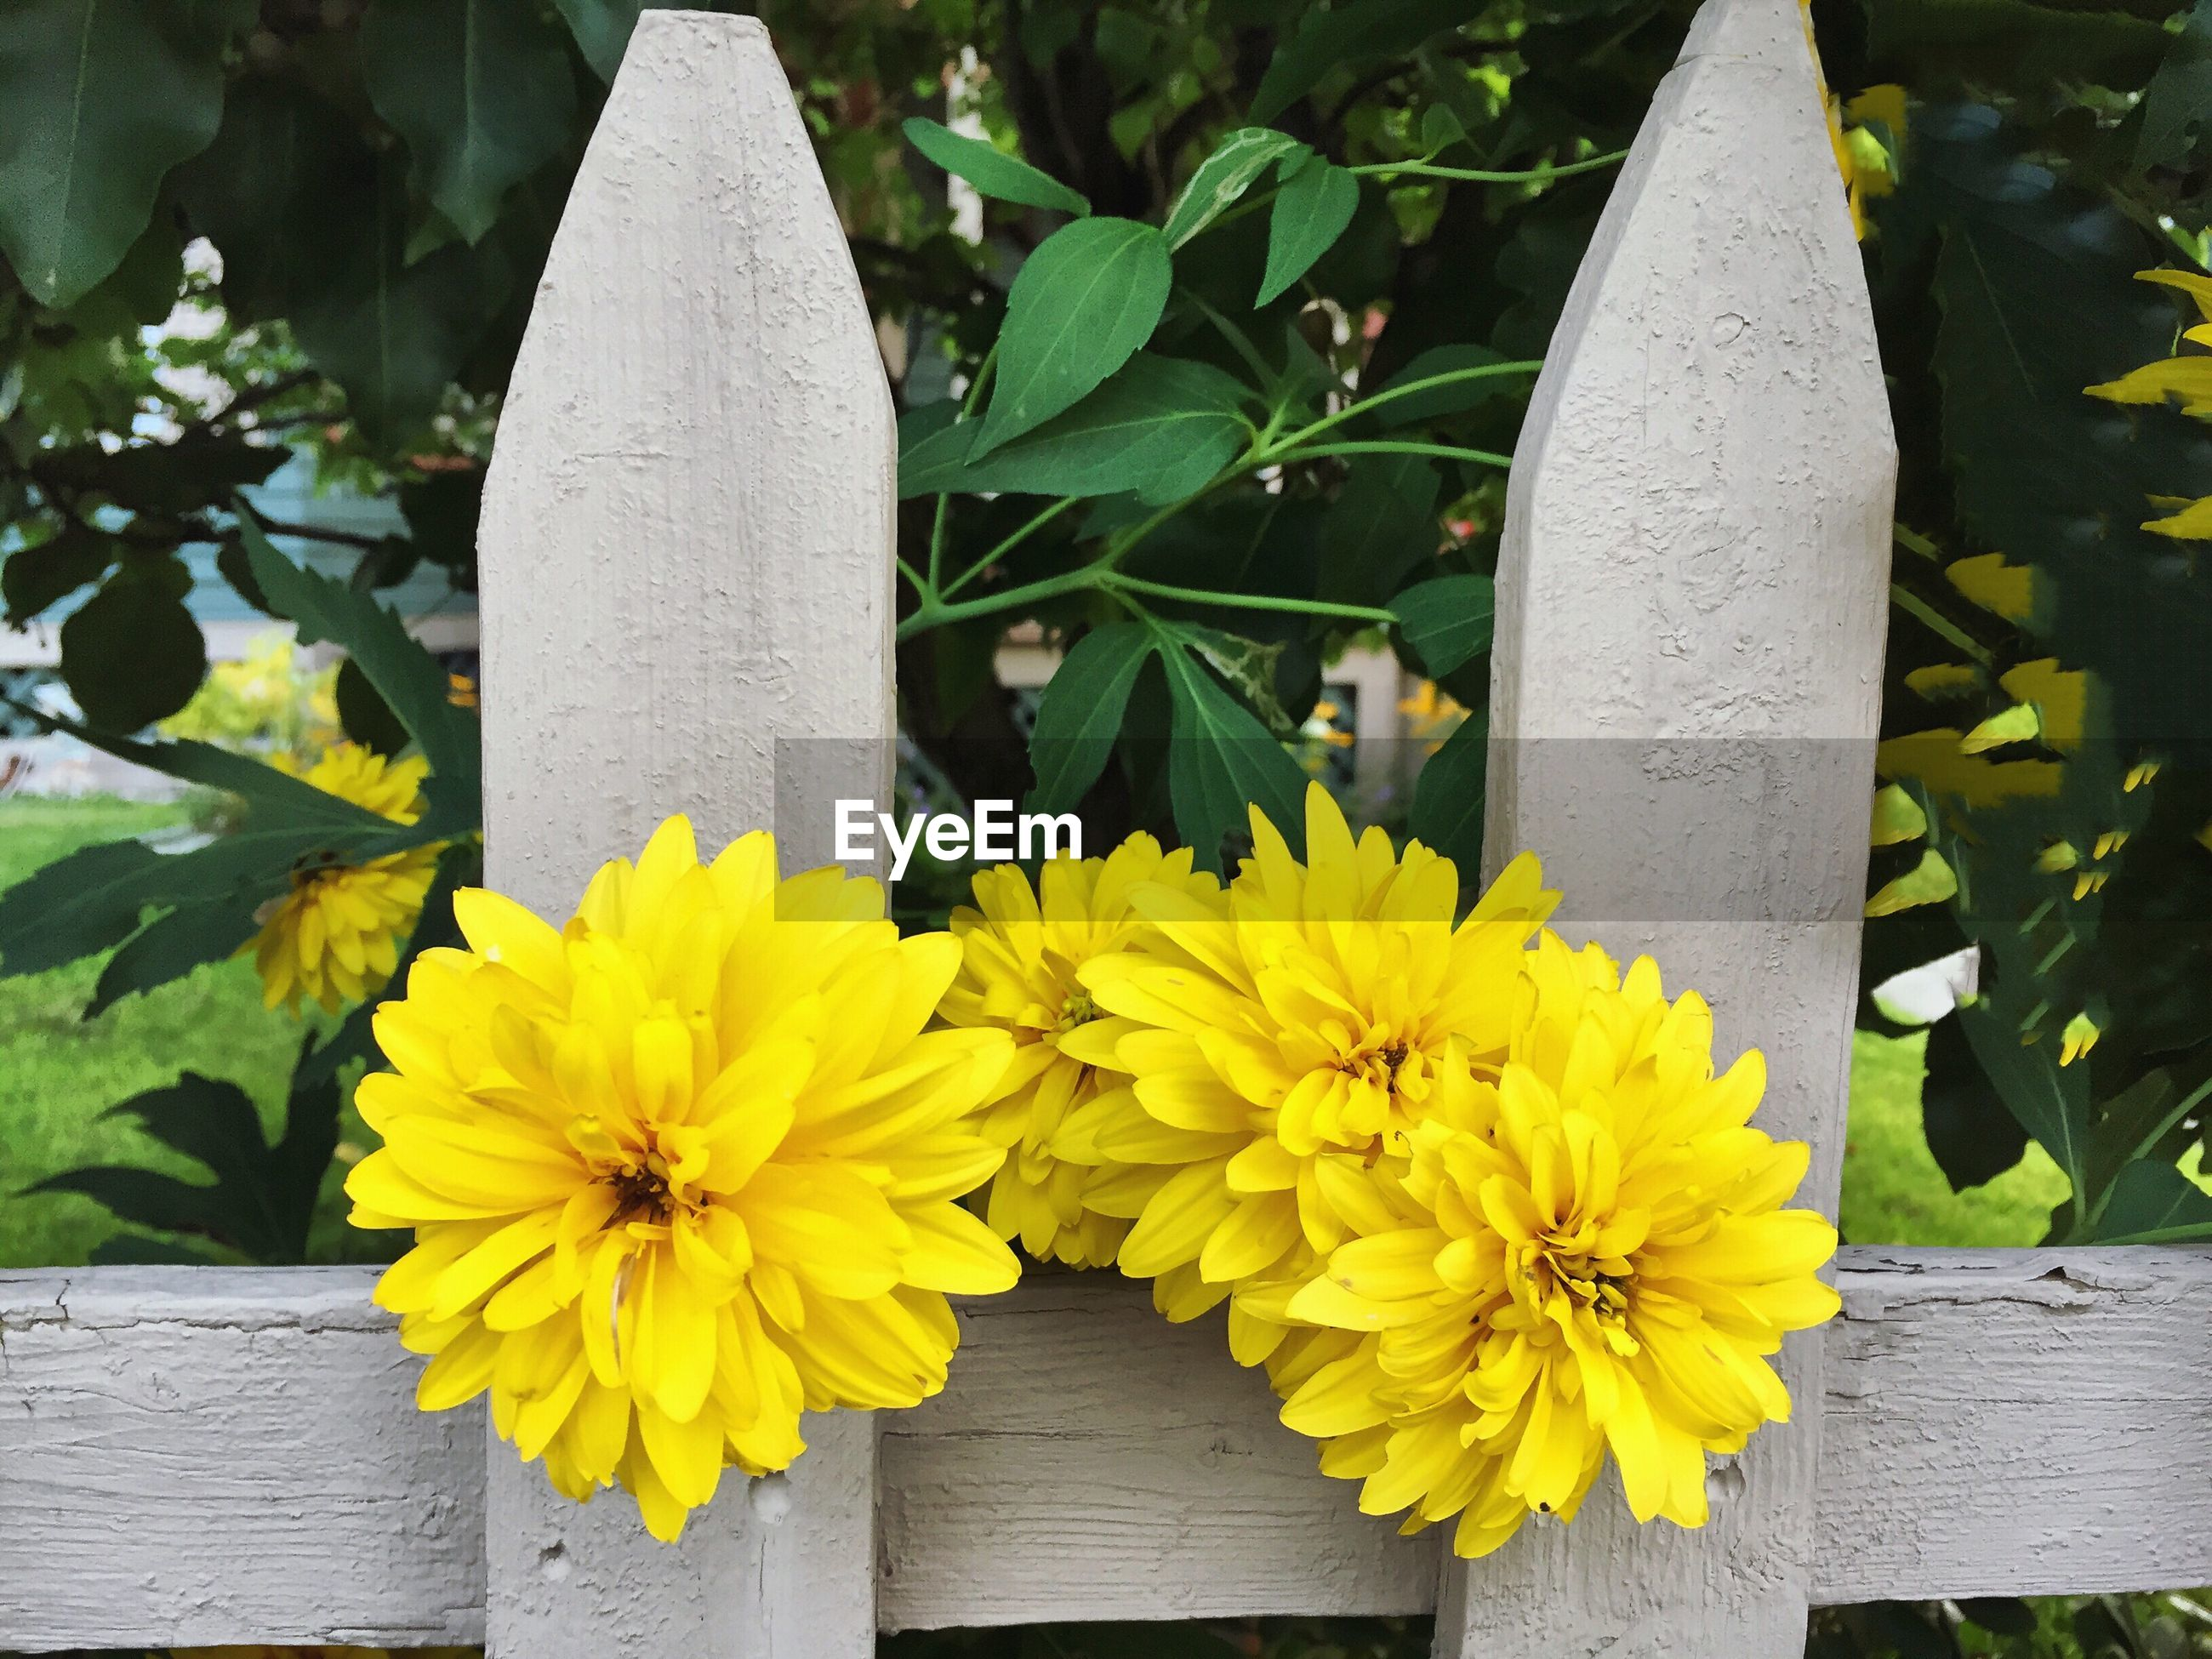 Yellow flowers blooming by wooden fence